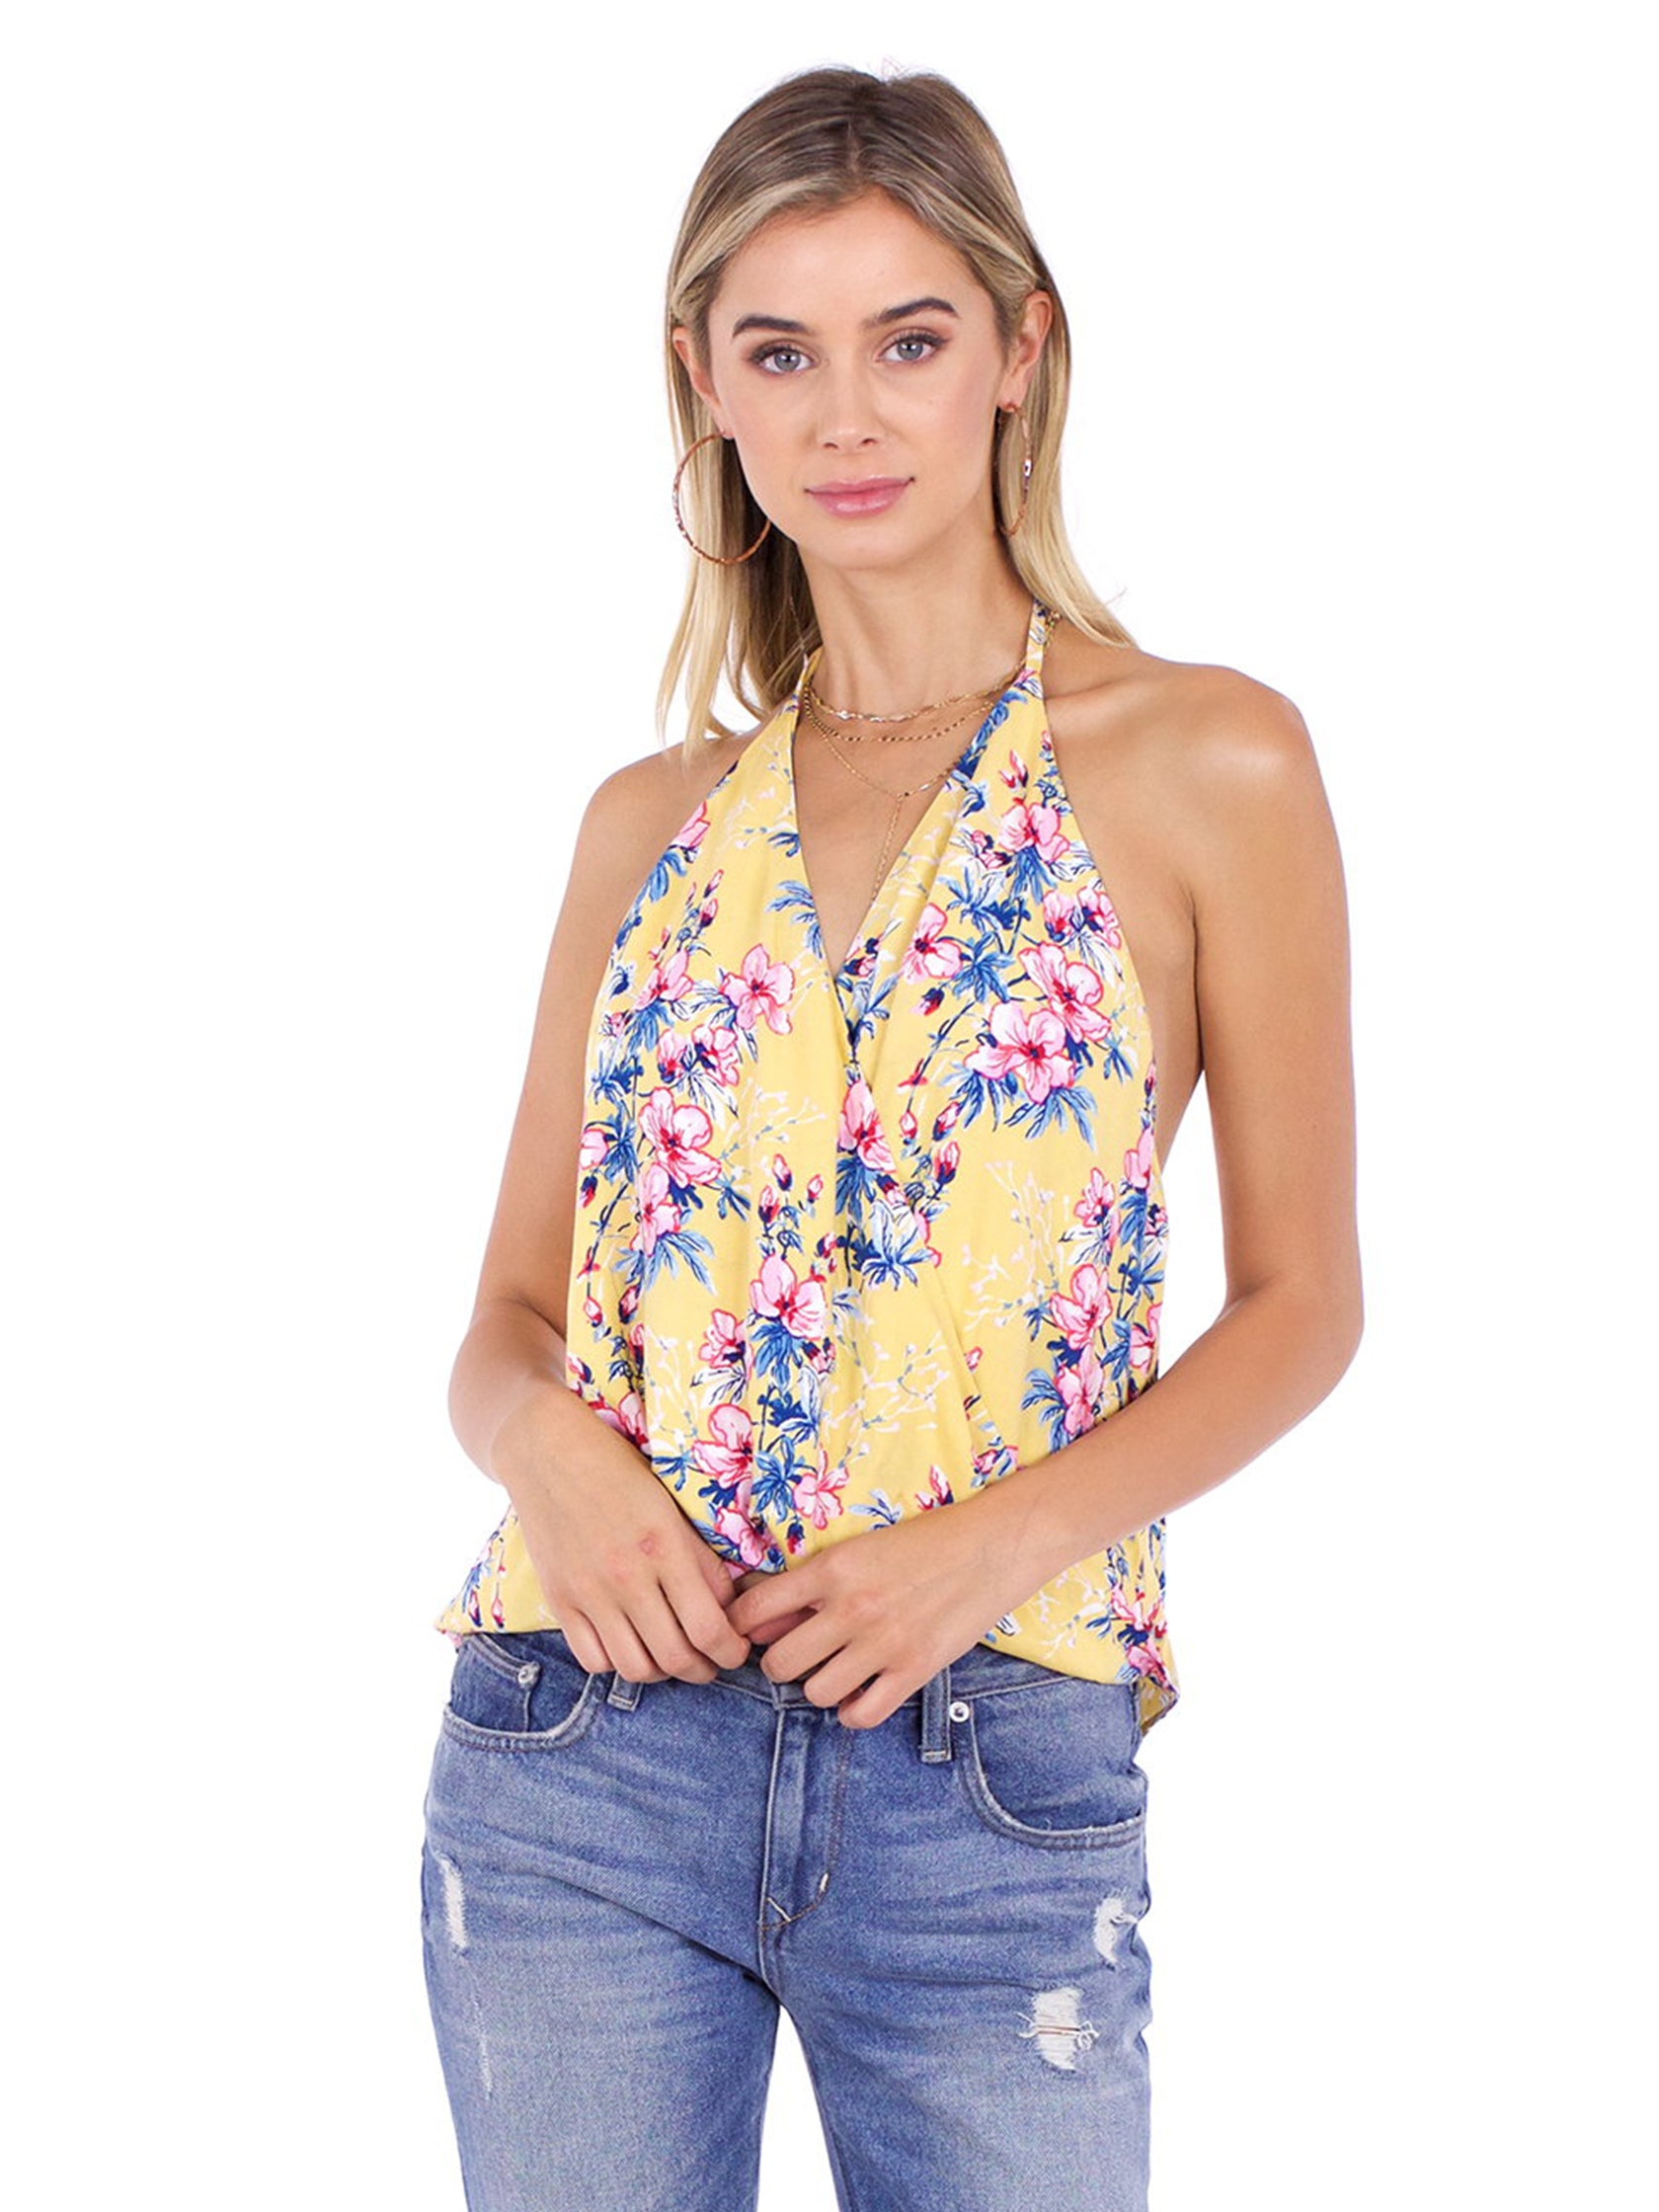 Woman wearing a top rental from FashionPass called Honey Floral Top